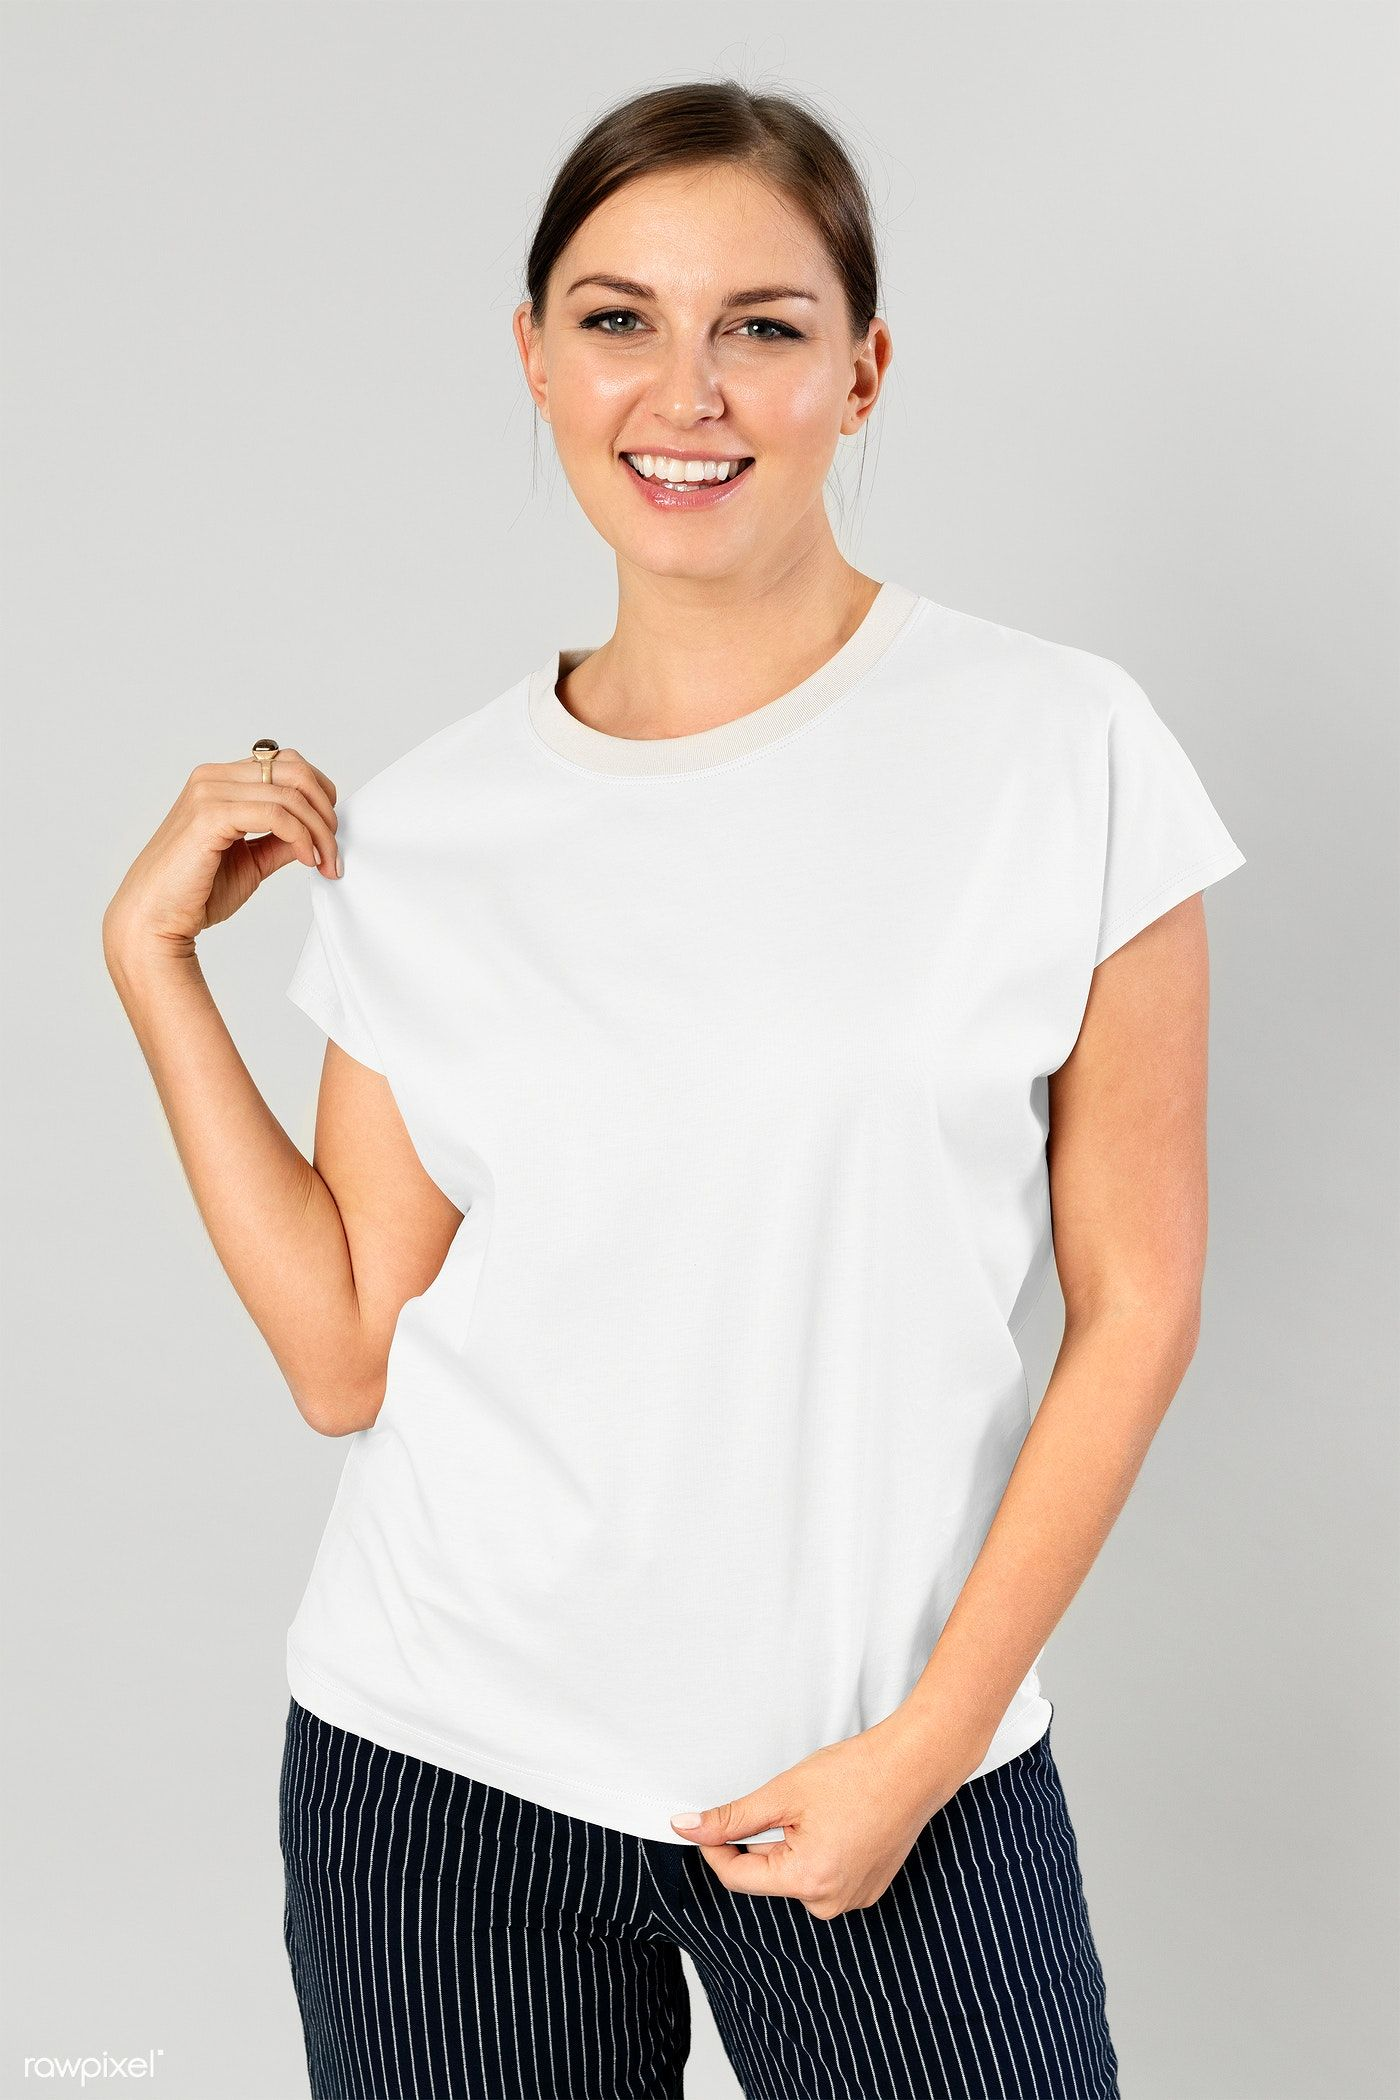 Download Download Premium Png Of Cheerful Woman Wearing T Shirt Transparent Png